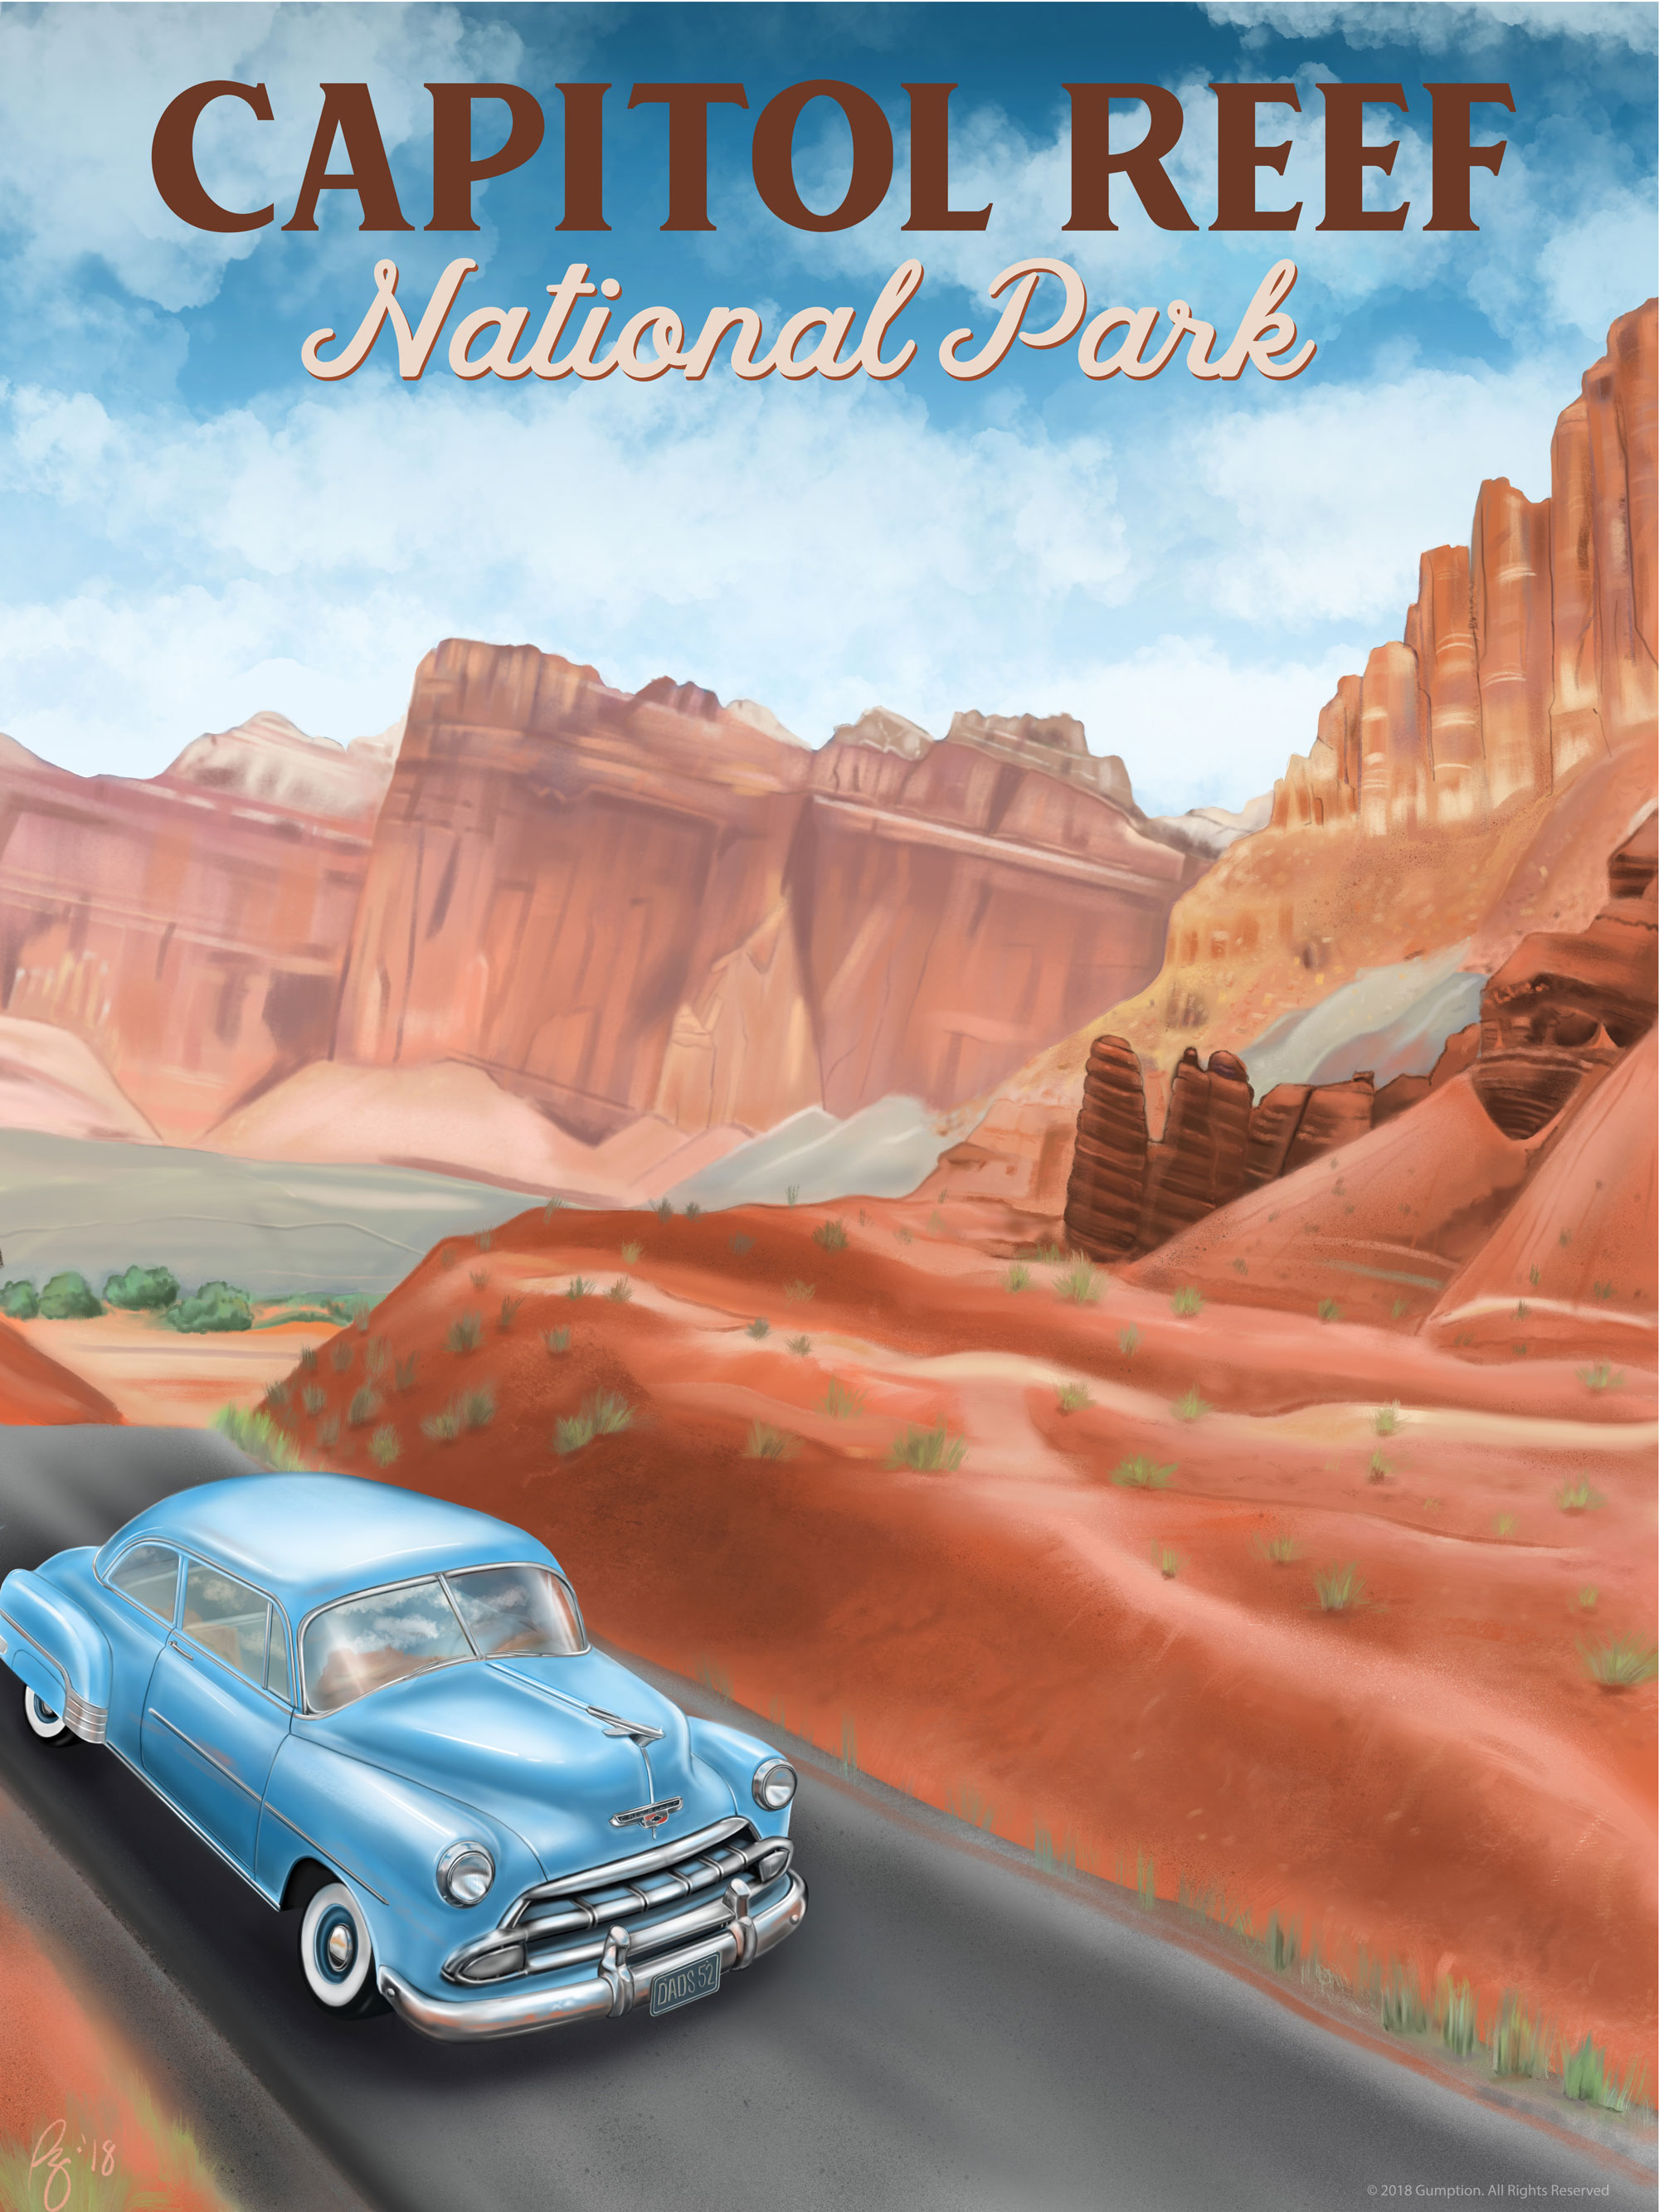 Capitol-Reef-Lettering---All-Rights-01.jpg